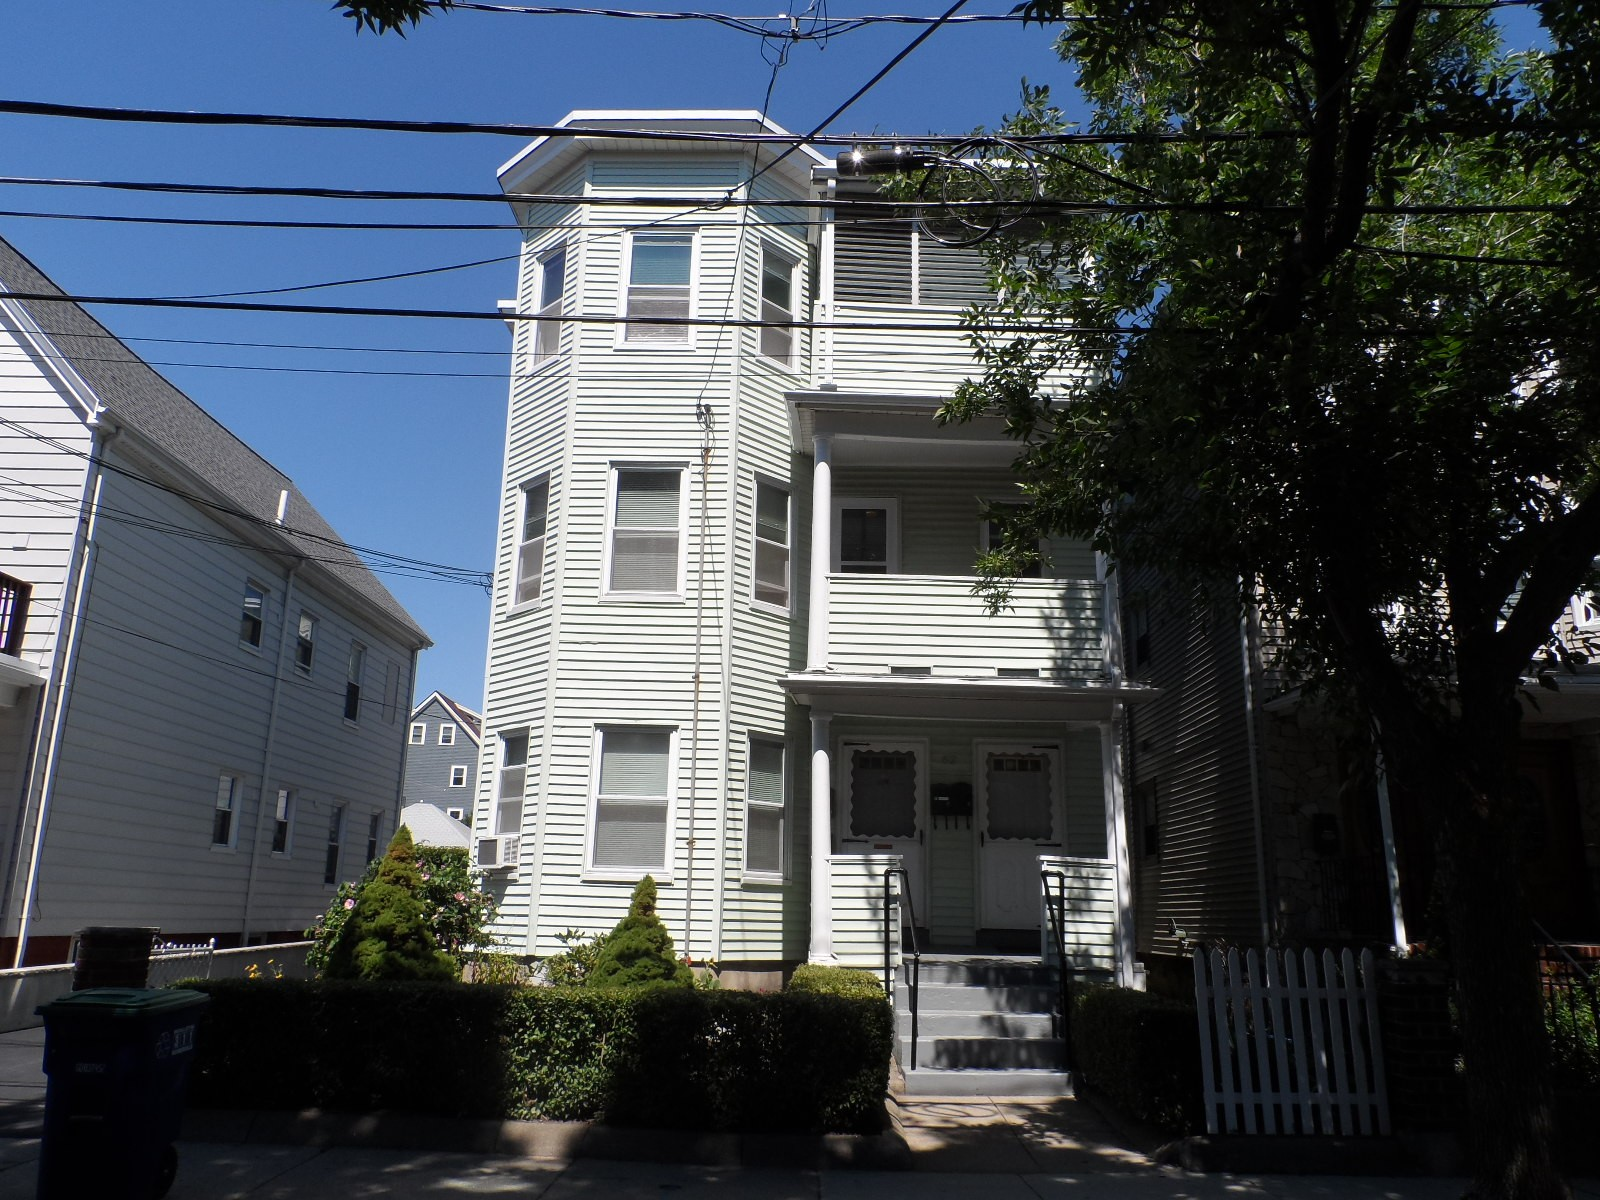 62 Grant Street 3 Somerville Ma 02145 2 Bedroom Apartment For Rent For 1 800 Month Zumper